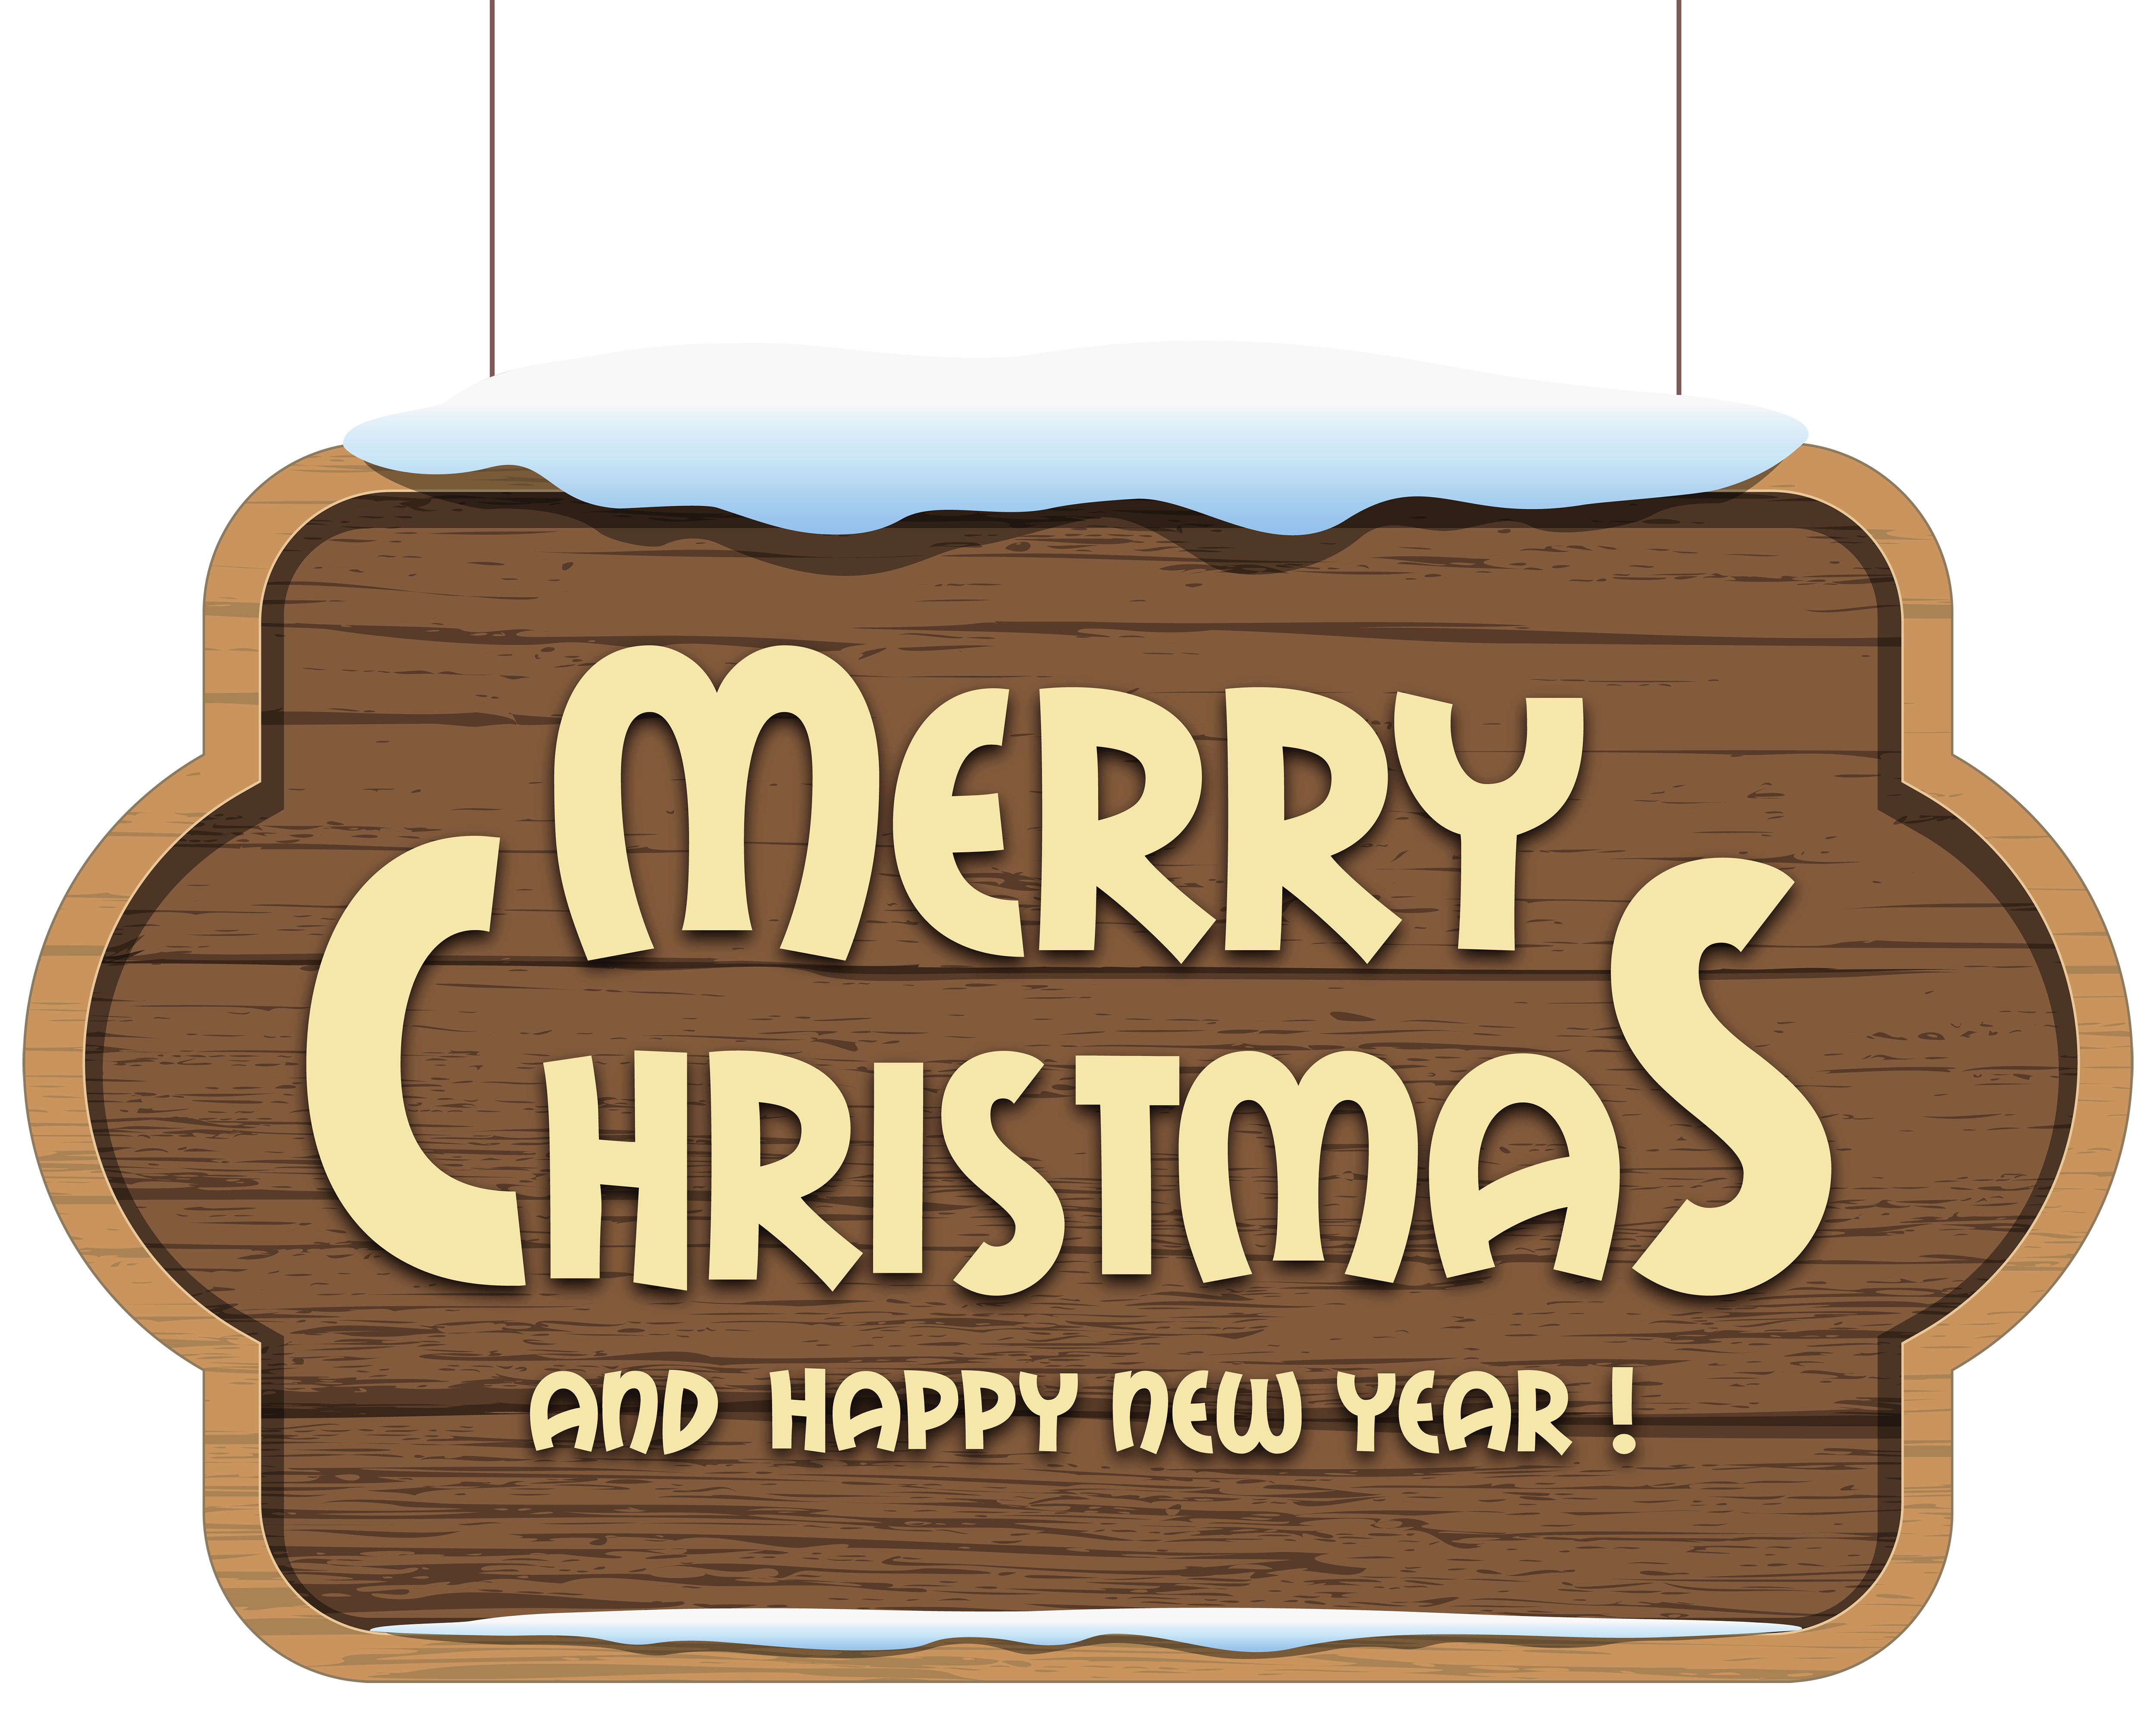 Merry Christmas Wooden Sign PNG Clipart Image.